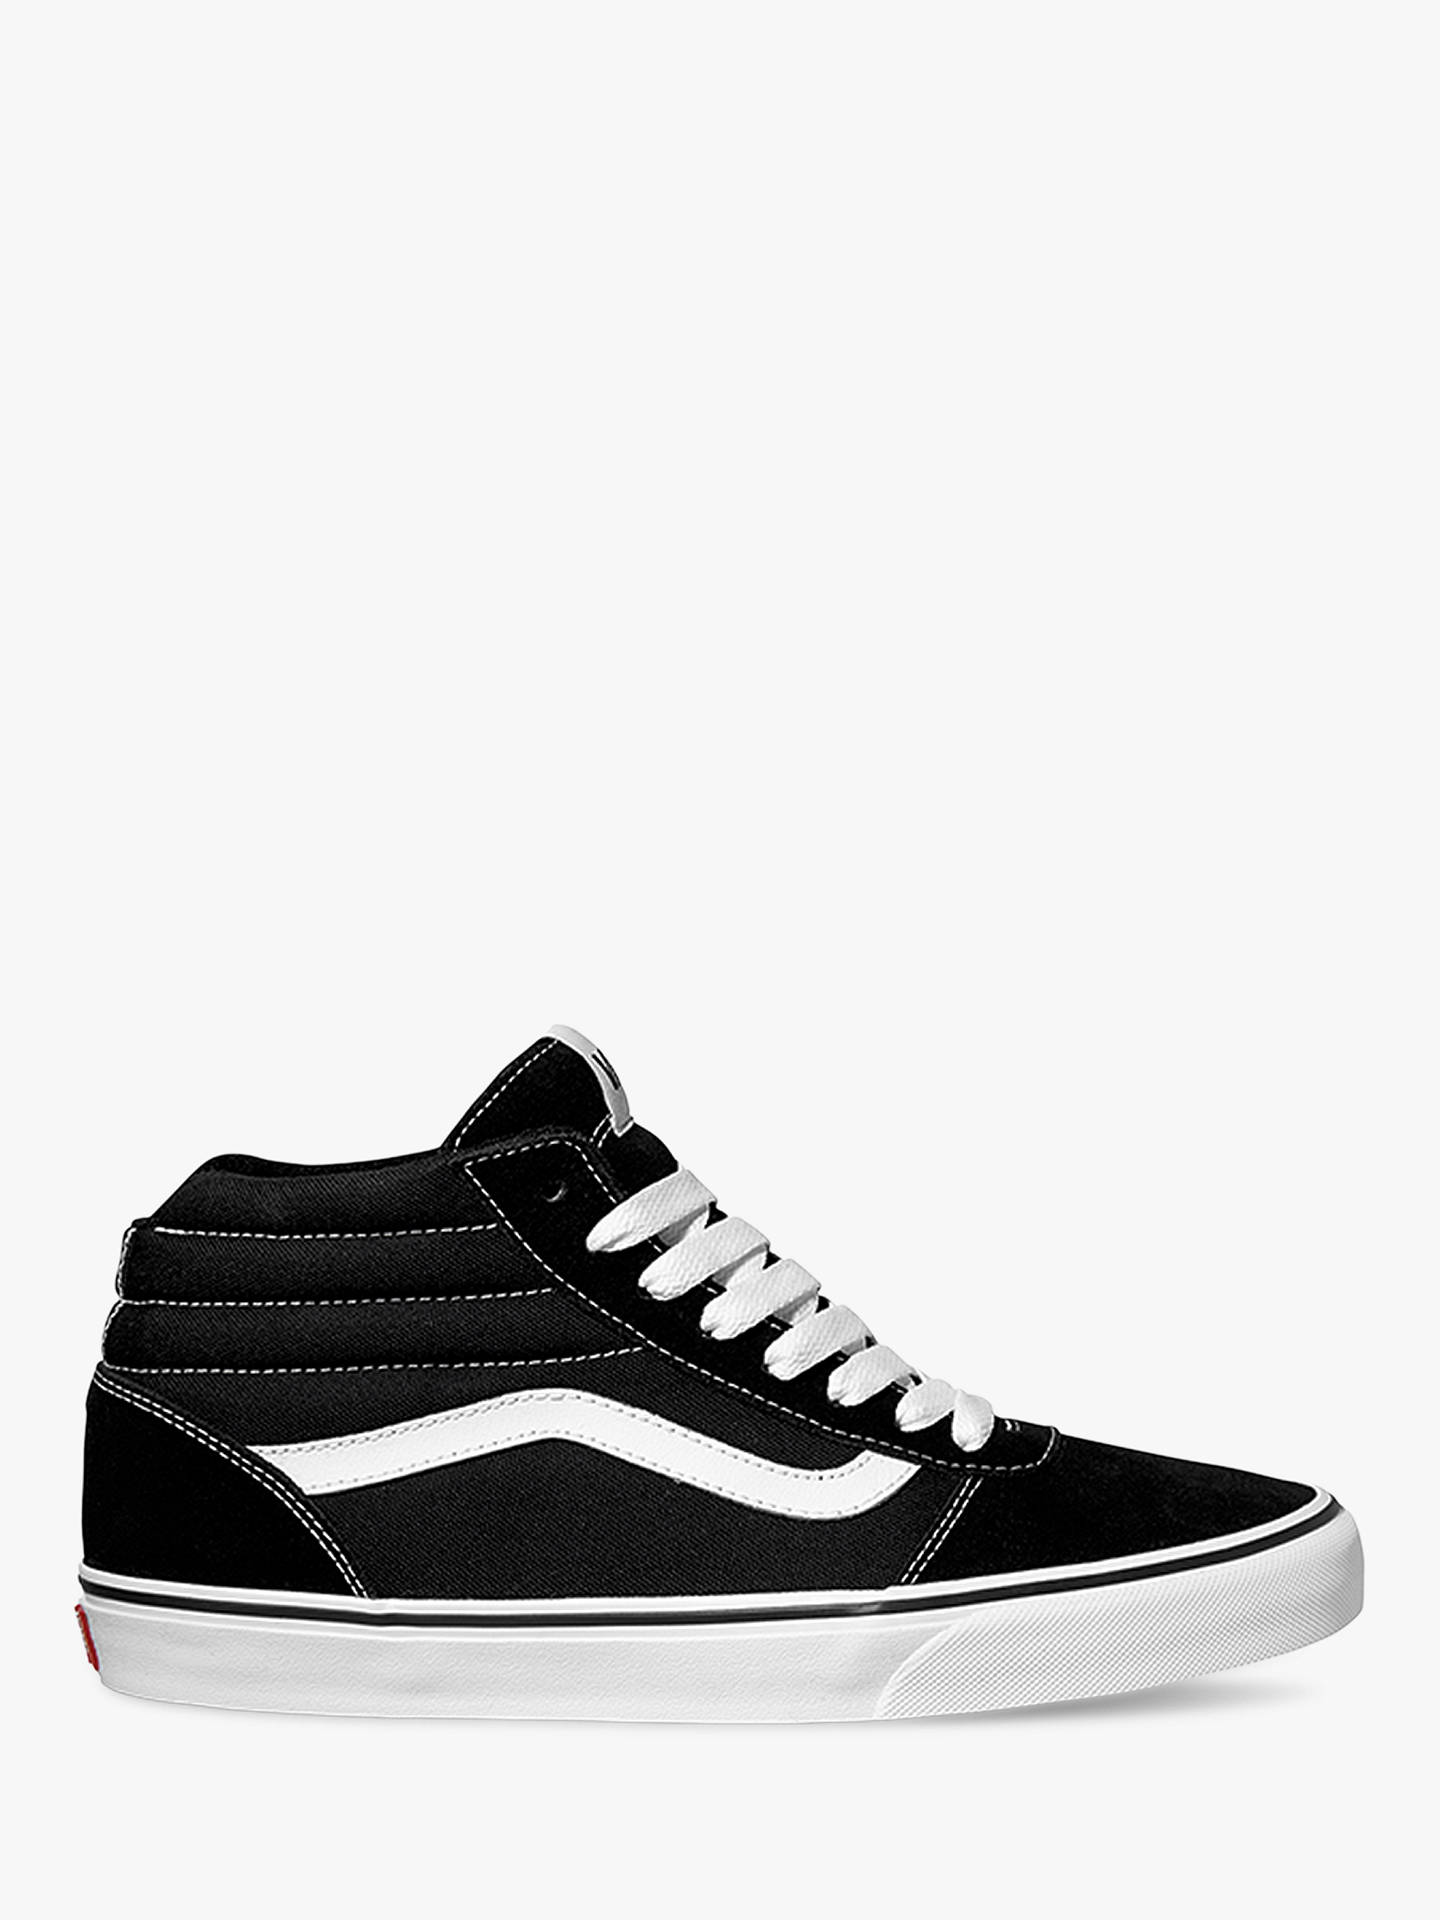 BuyVans Ward Canvas High Top Trainers 0627e5de751a